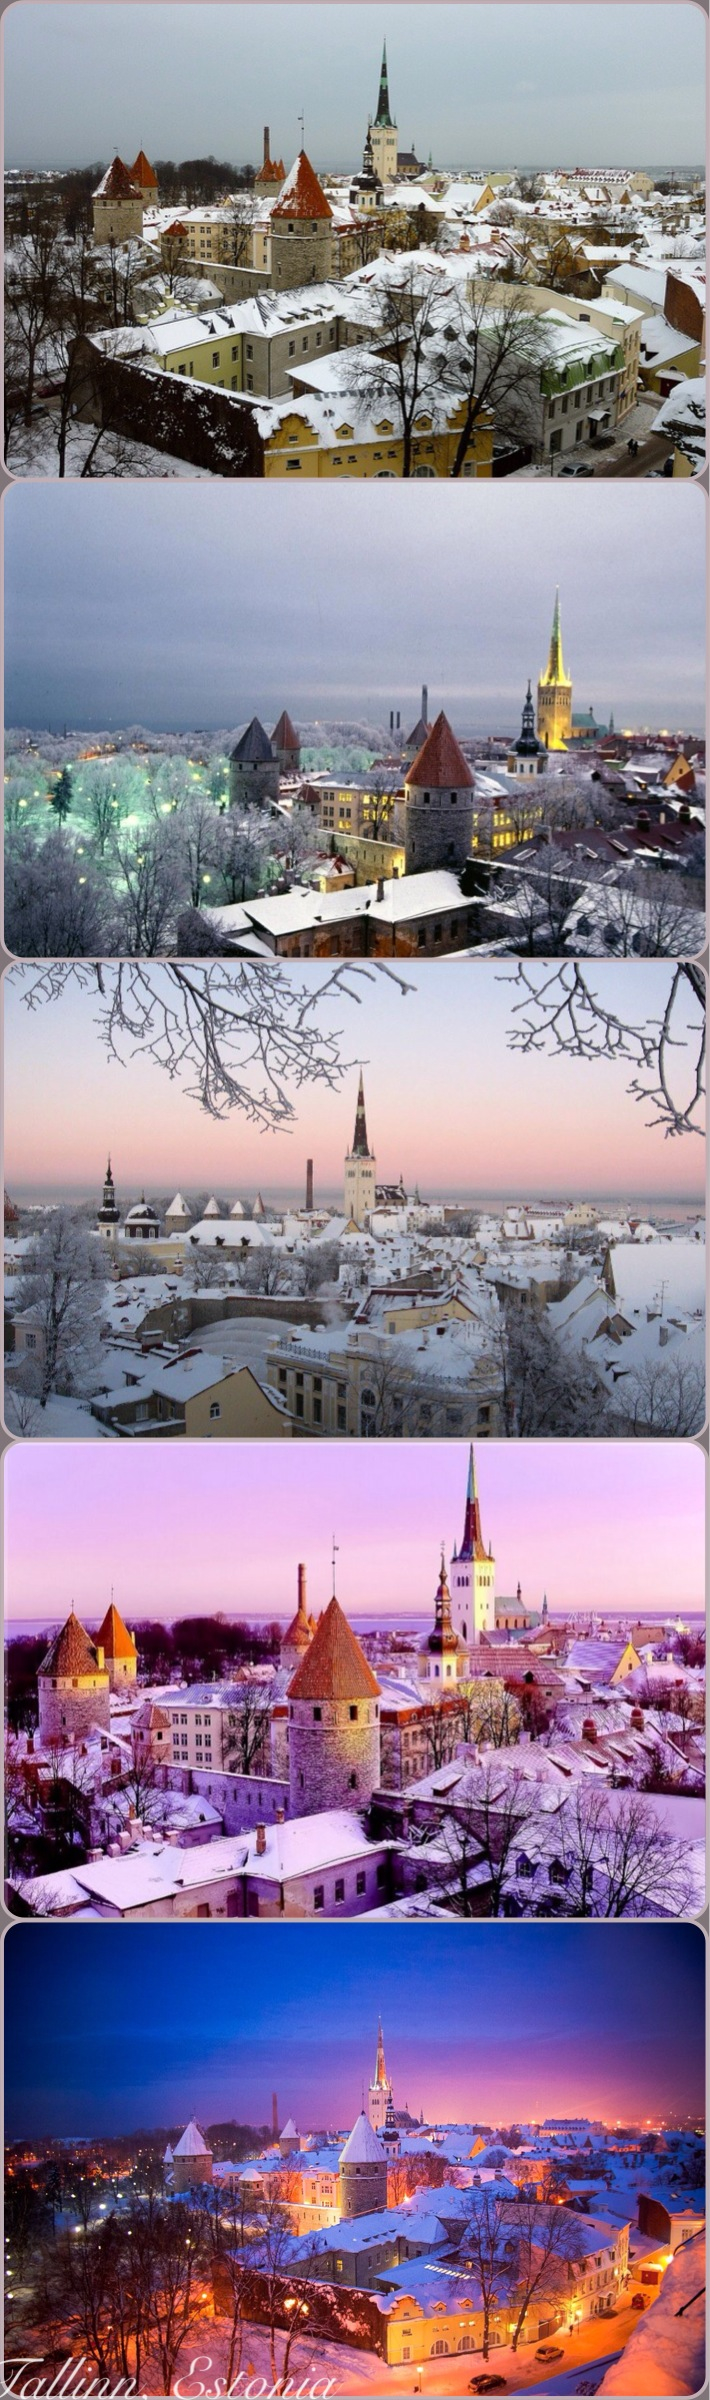 Estonia - adventure awaits. This place is beautiful. The streets quaint, the markets in Tallin buzz, and the smells intoxicating.